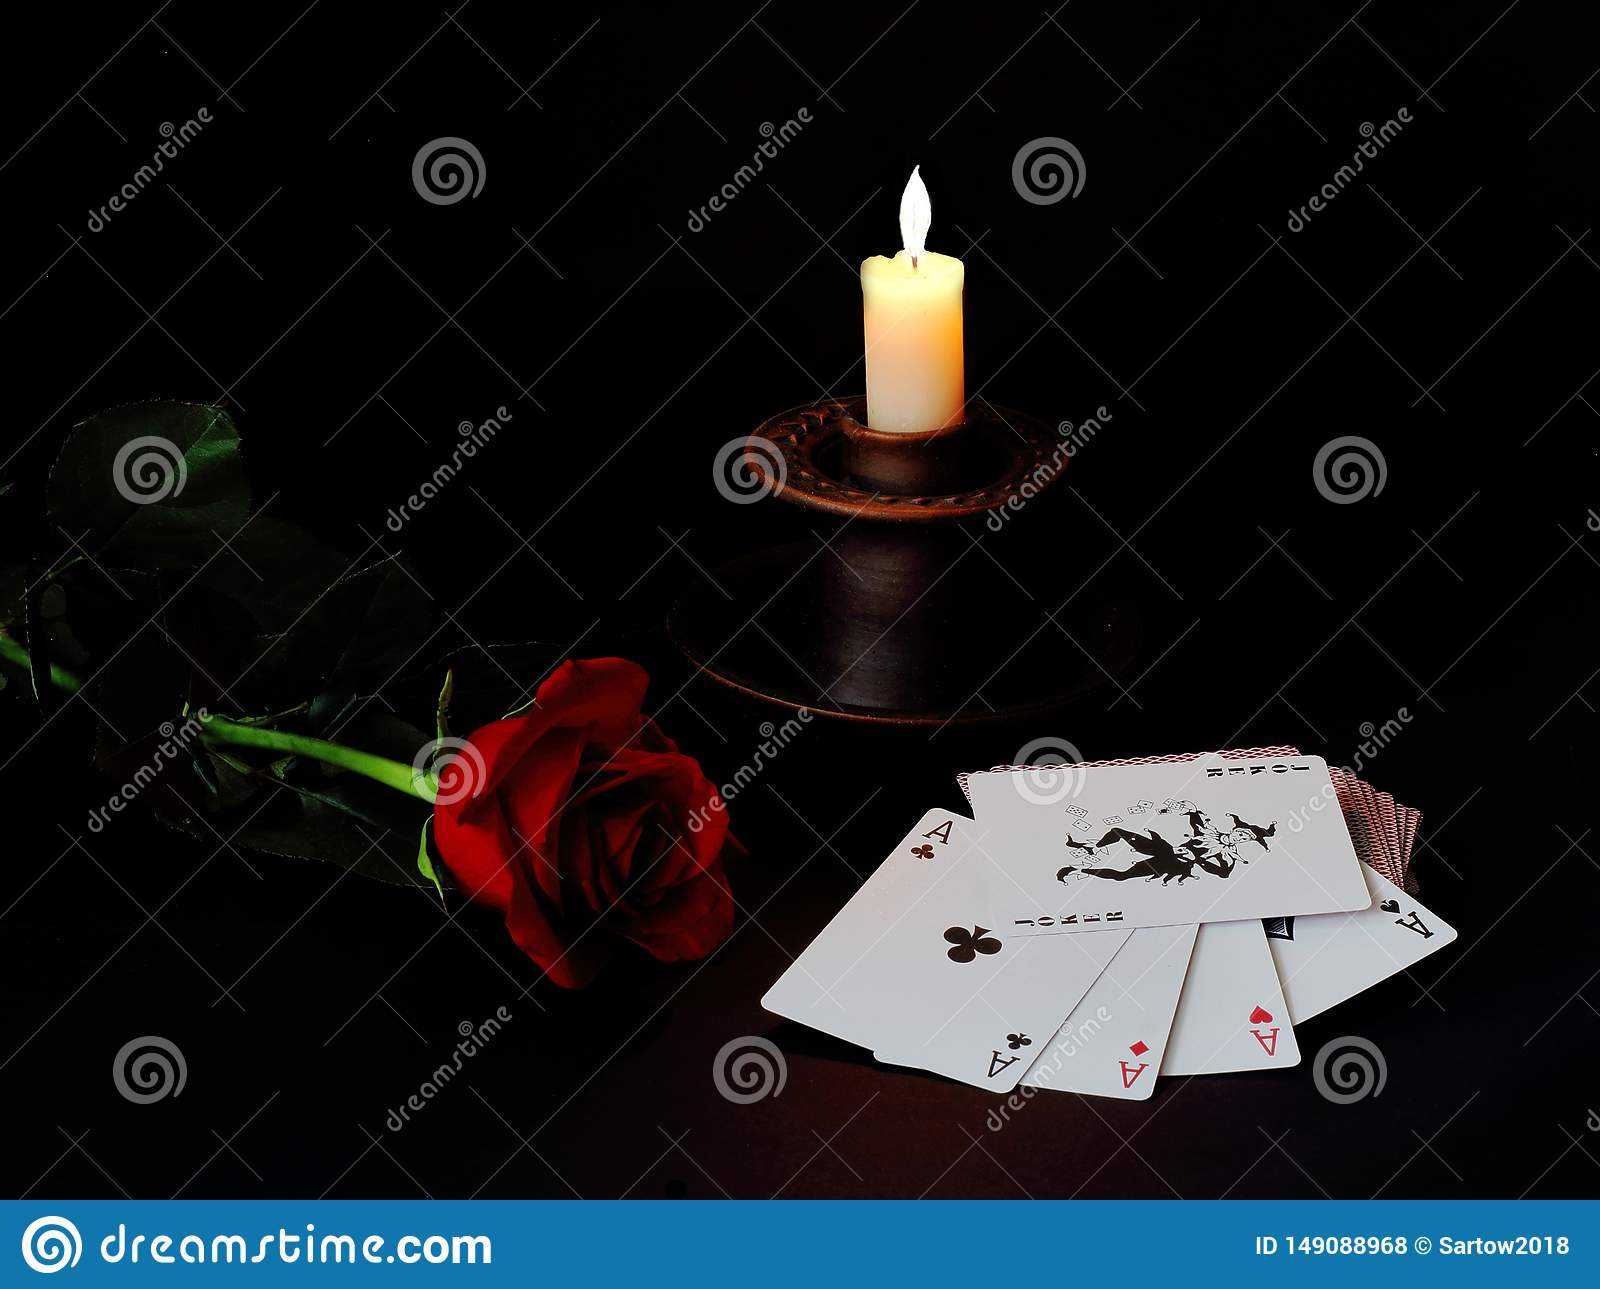 Red rose, ceramic candlestick with burning white wax candles and a deck of cards on a black background. Symbolic concept — life